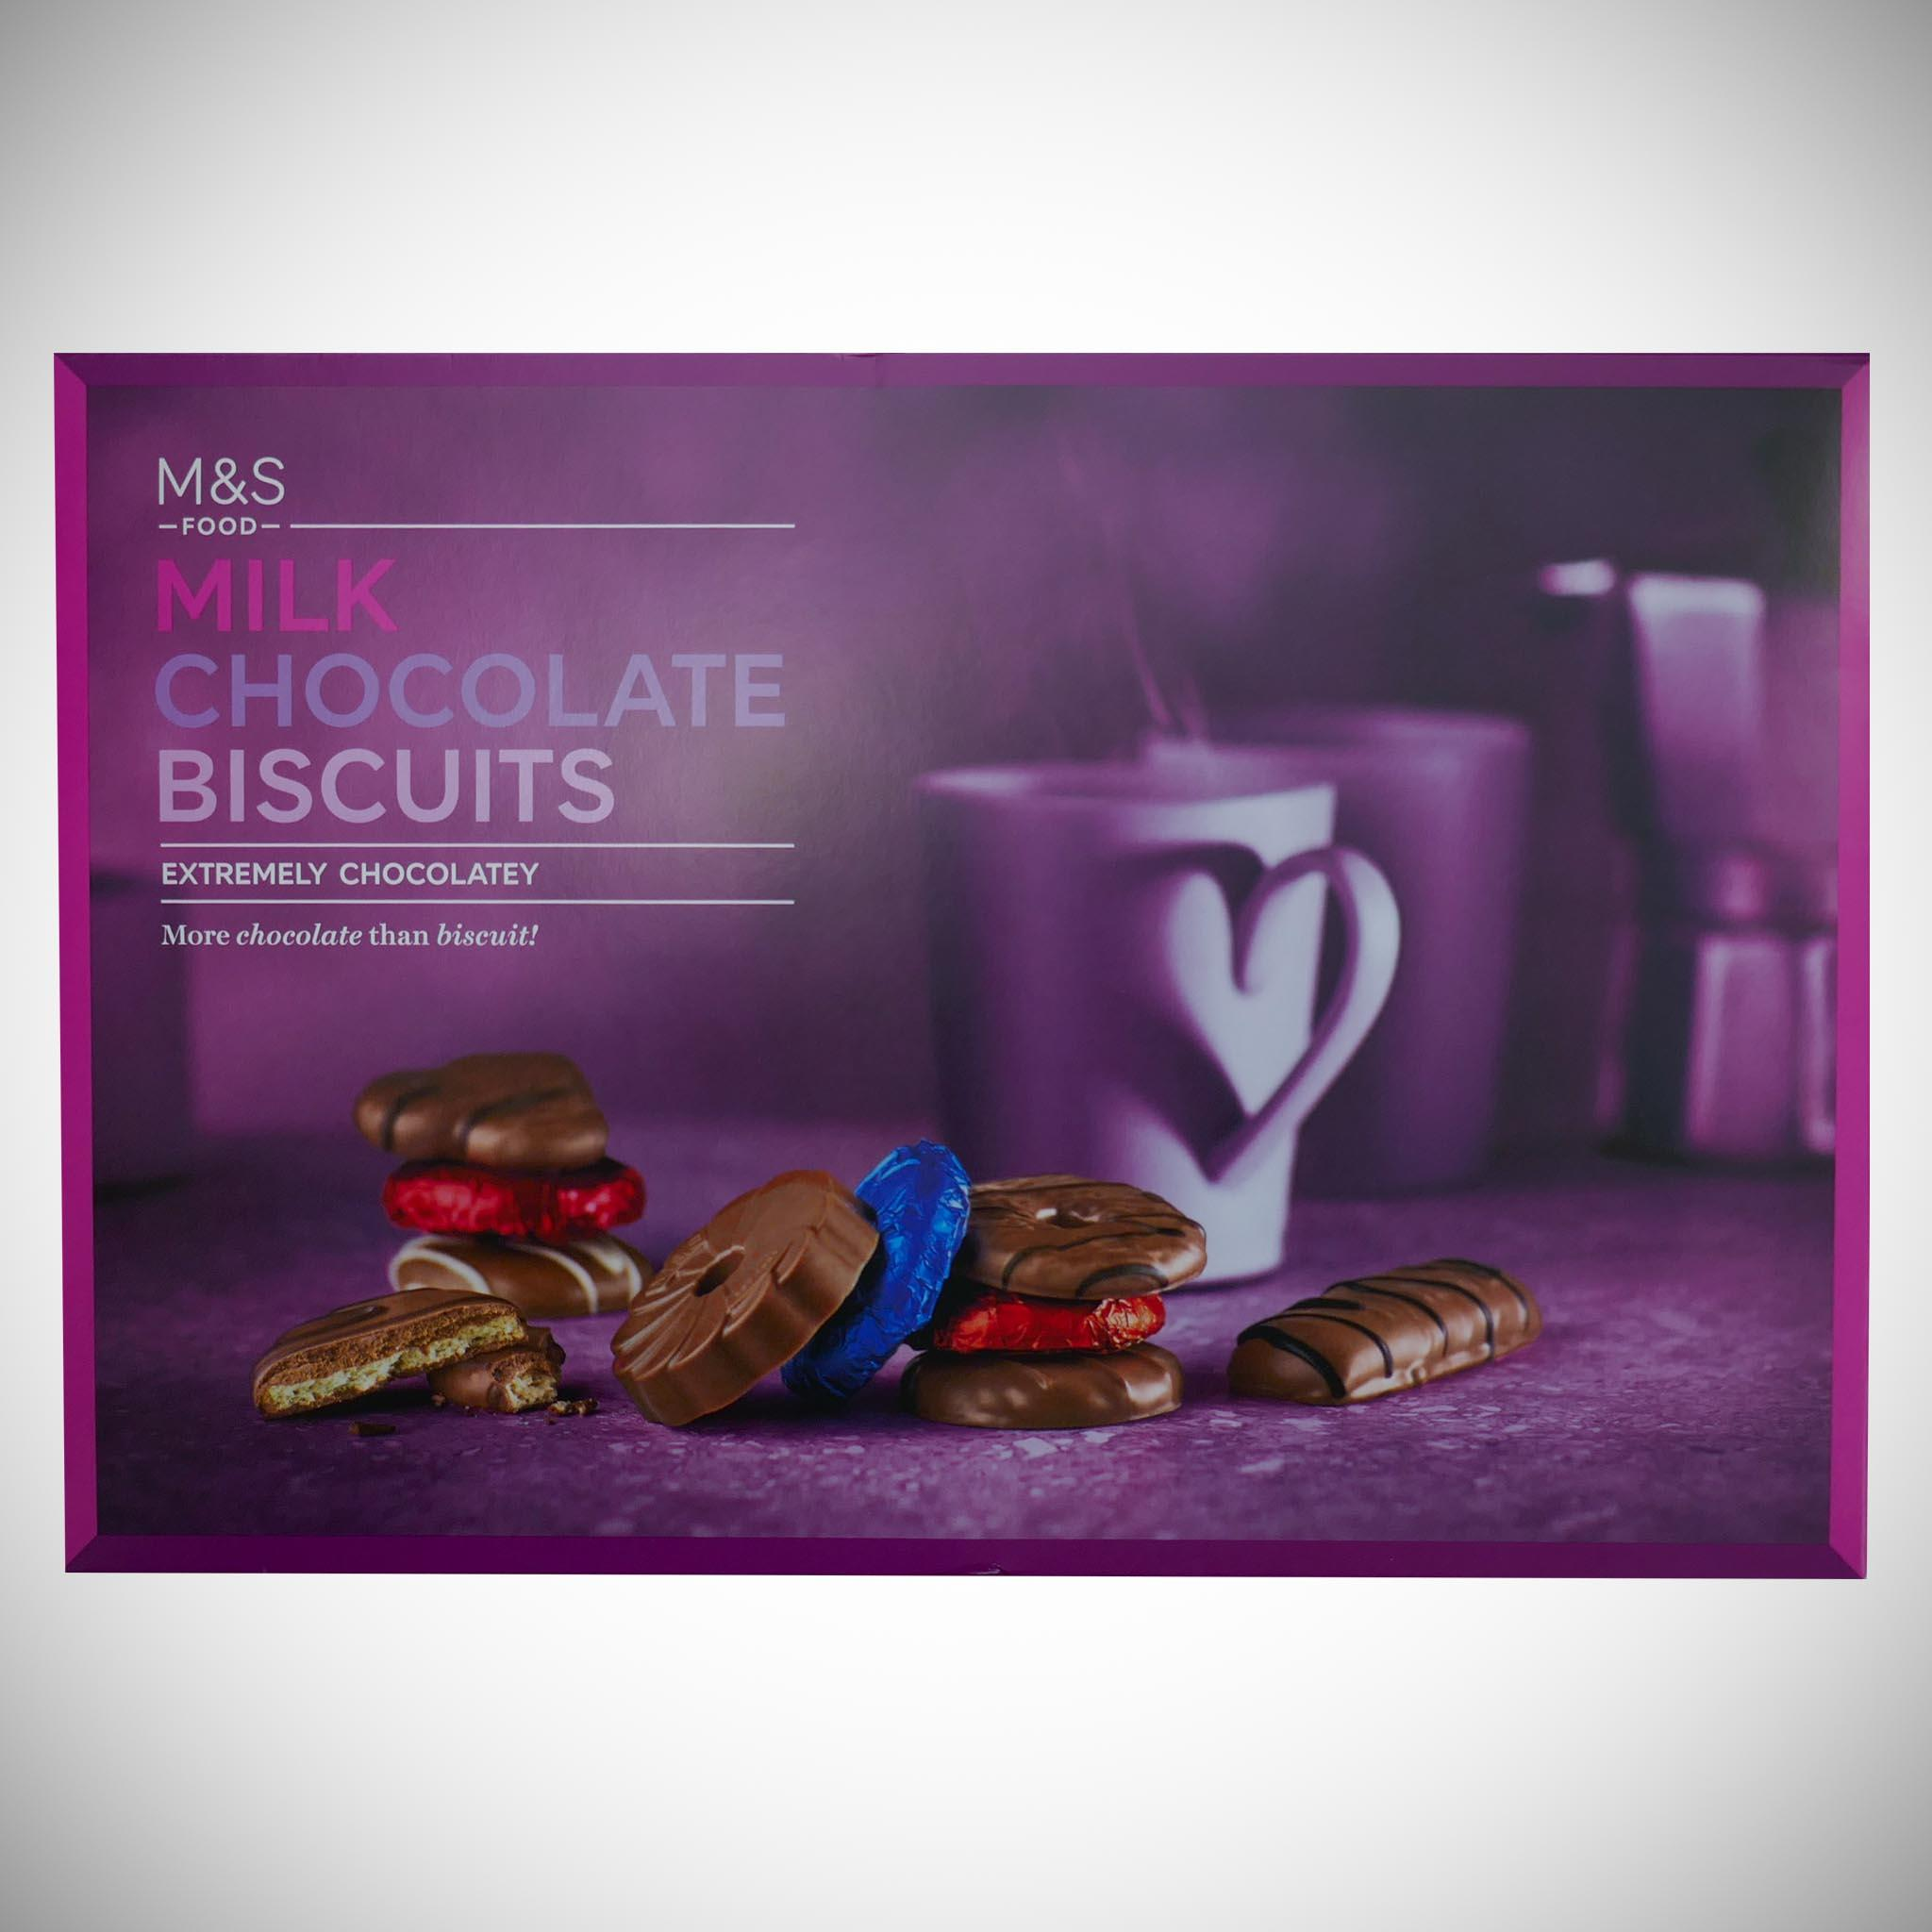 Extremely Chocolatey Milk Chocolate Biscuits 450g